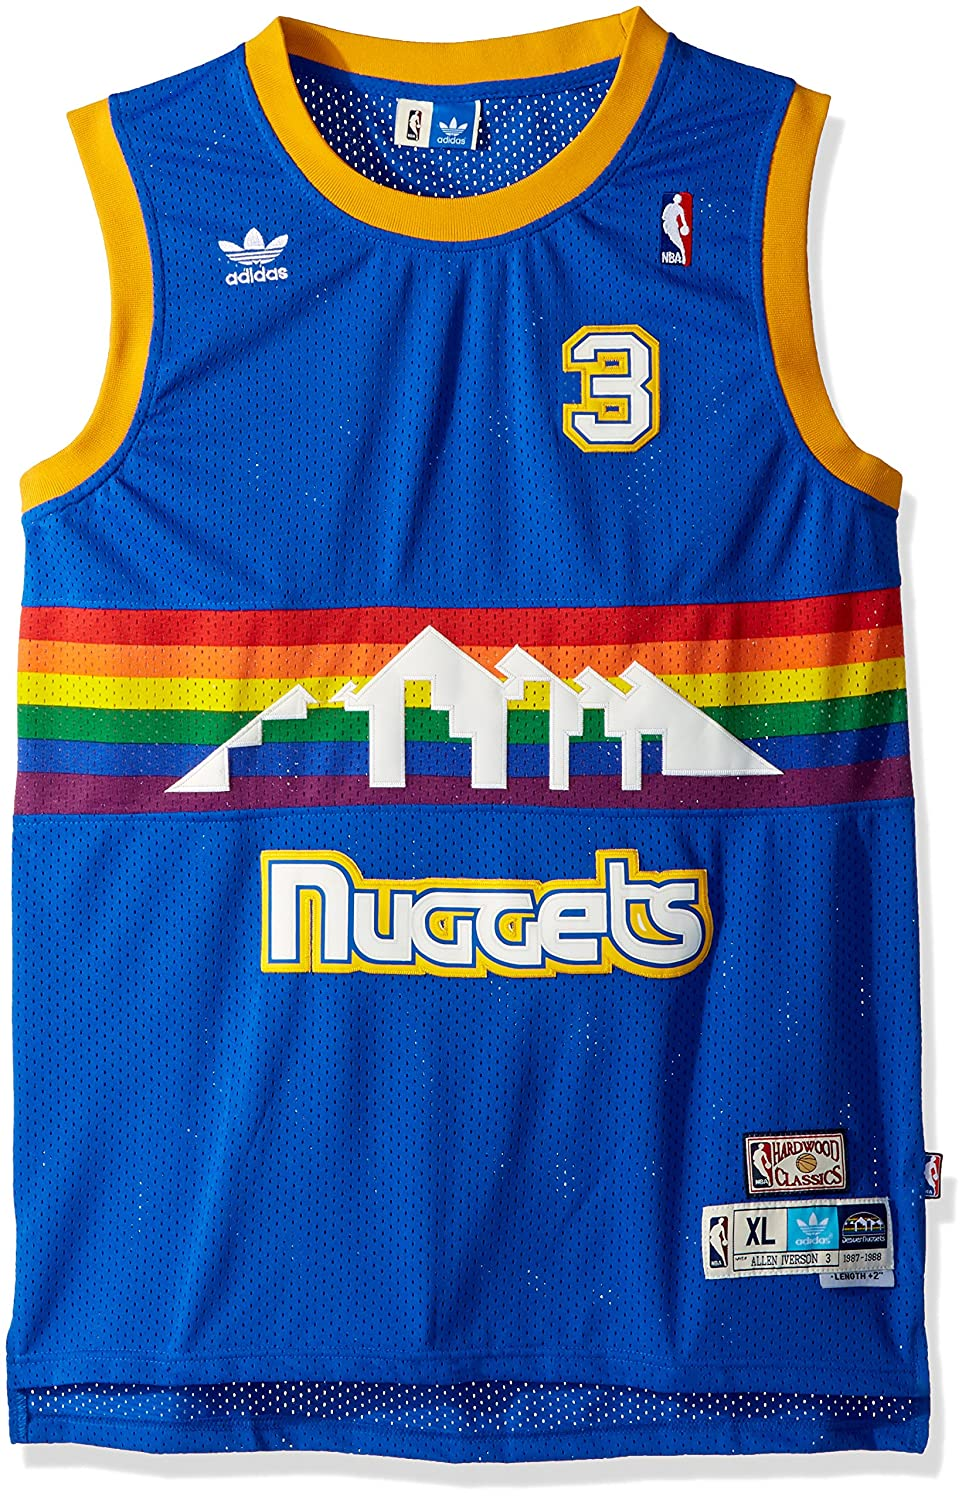 Adidas dikembe Mutombo Denver Nuggets NBA Throwback Swingman Jersey Camiseta - Blue, Small: Amazon.es: Deportes y aire libre